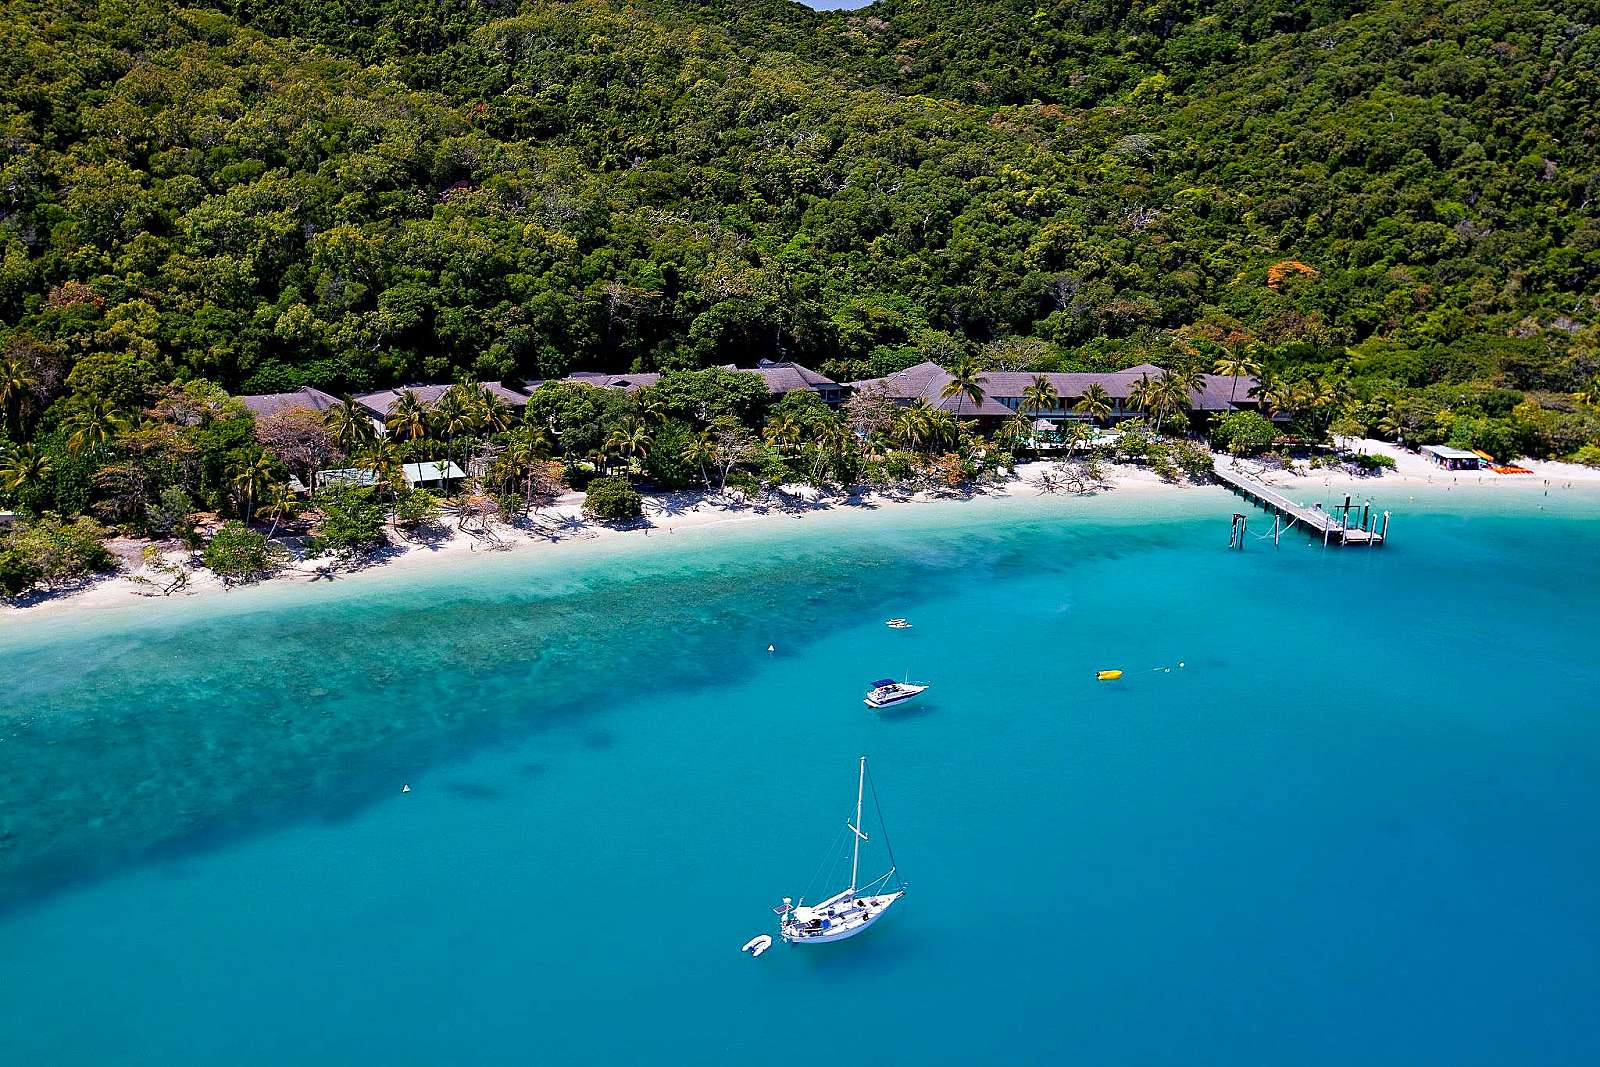 Feature image for 08:00AM Departure - Same Day Return Fitzroy Island Ferry transfers (Full Day 5:00PM Return)